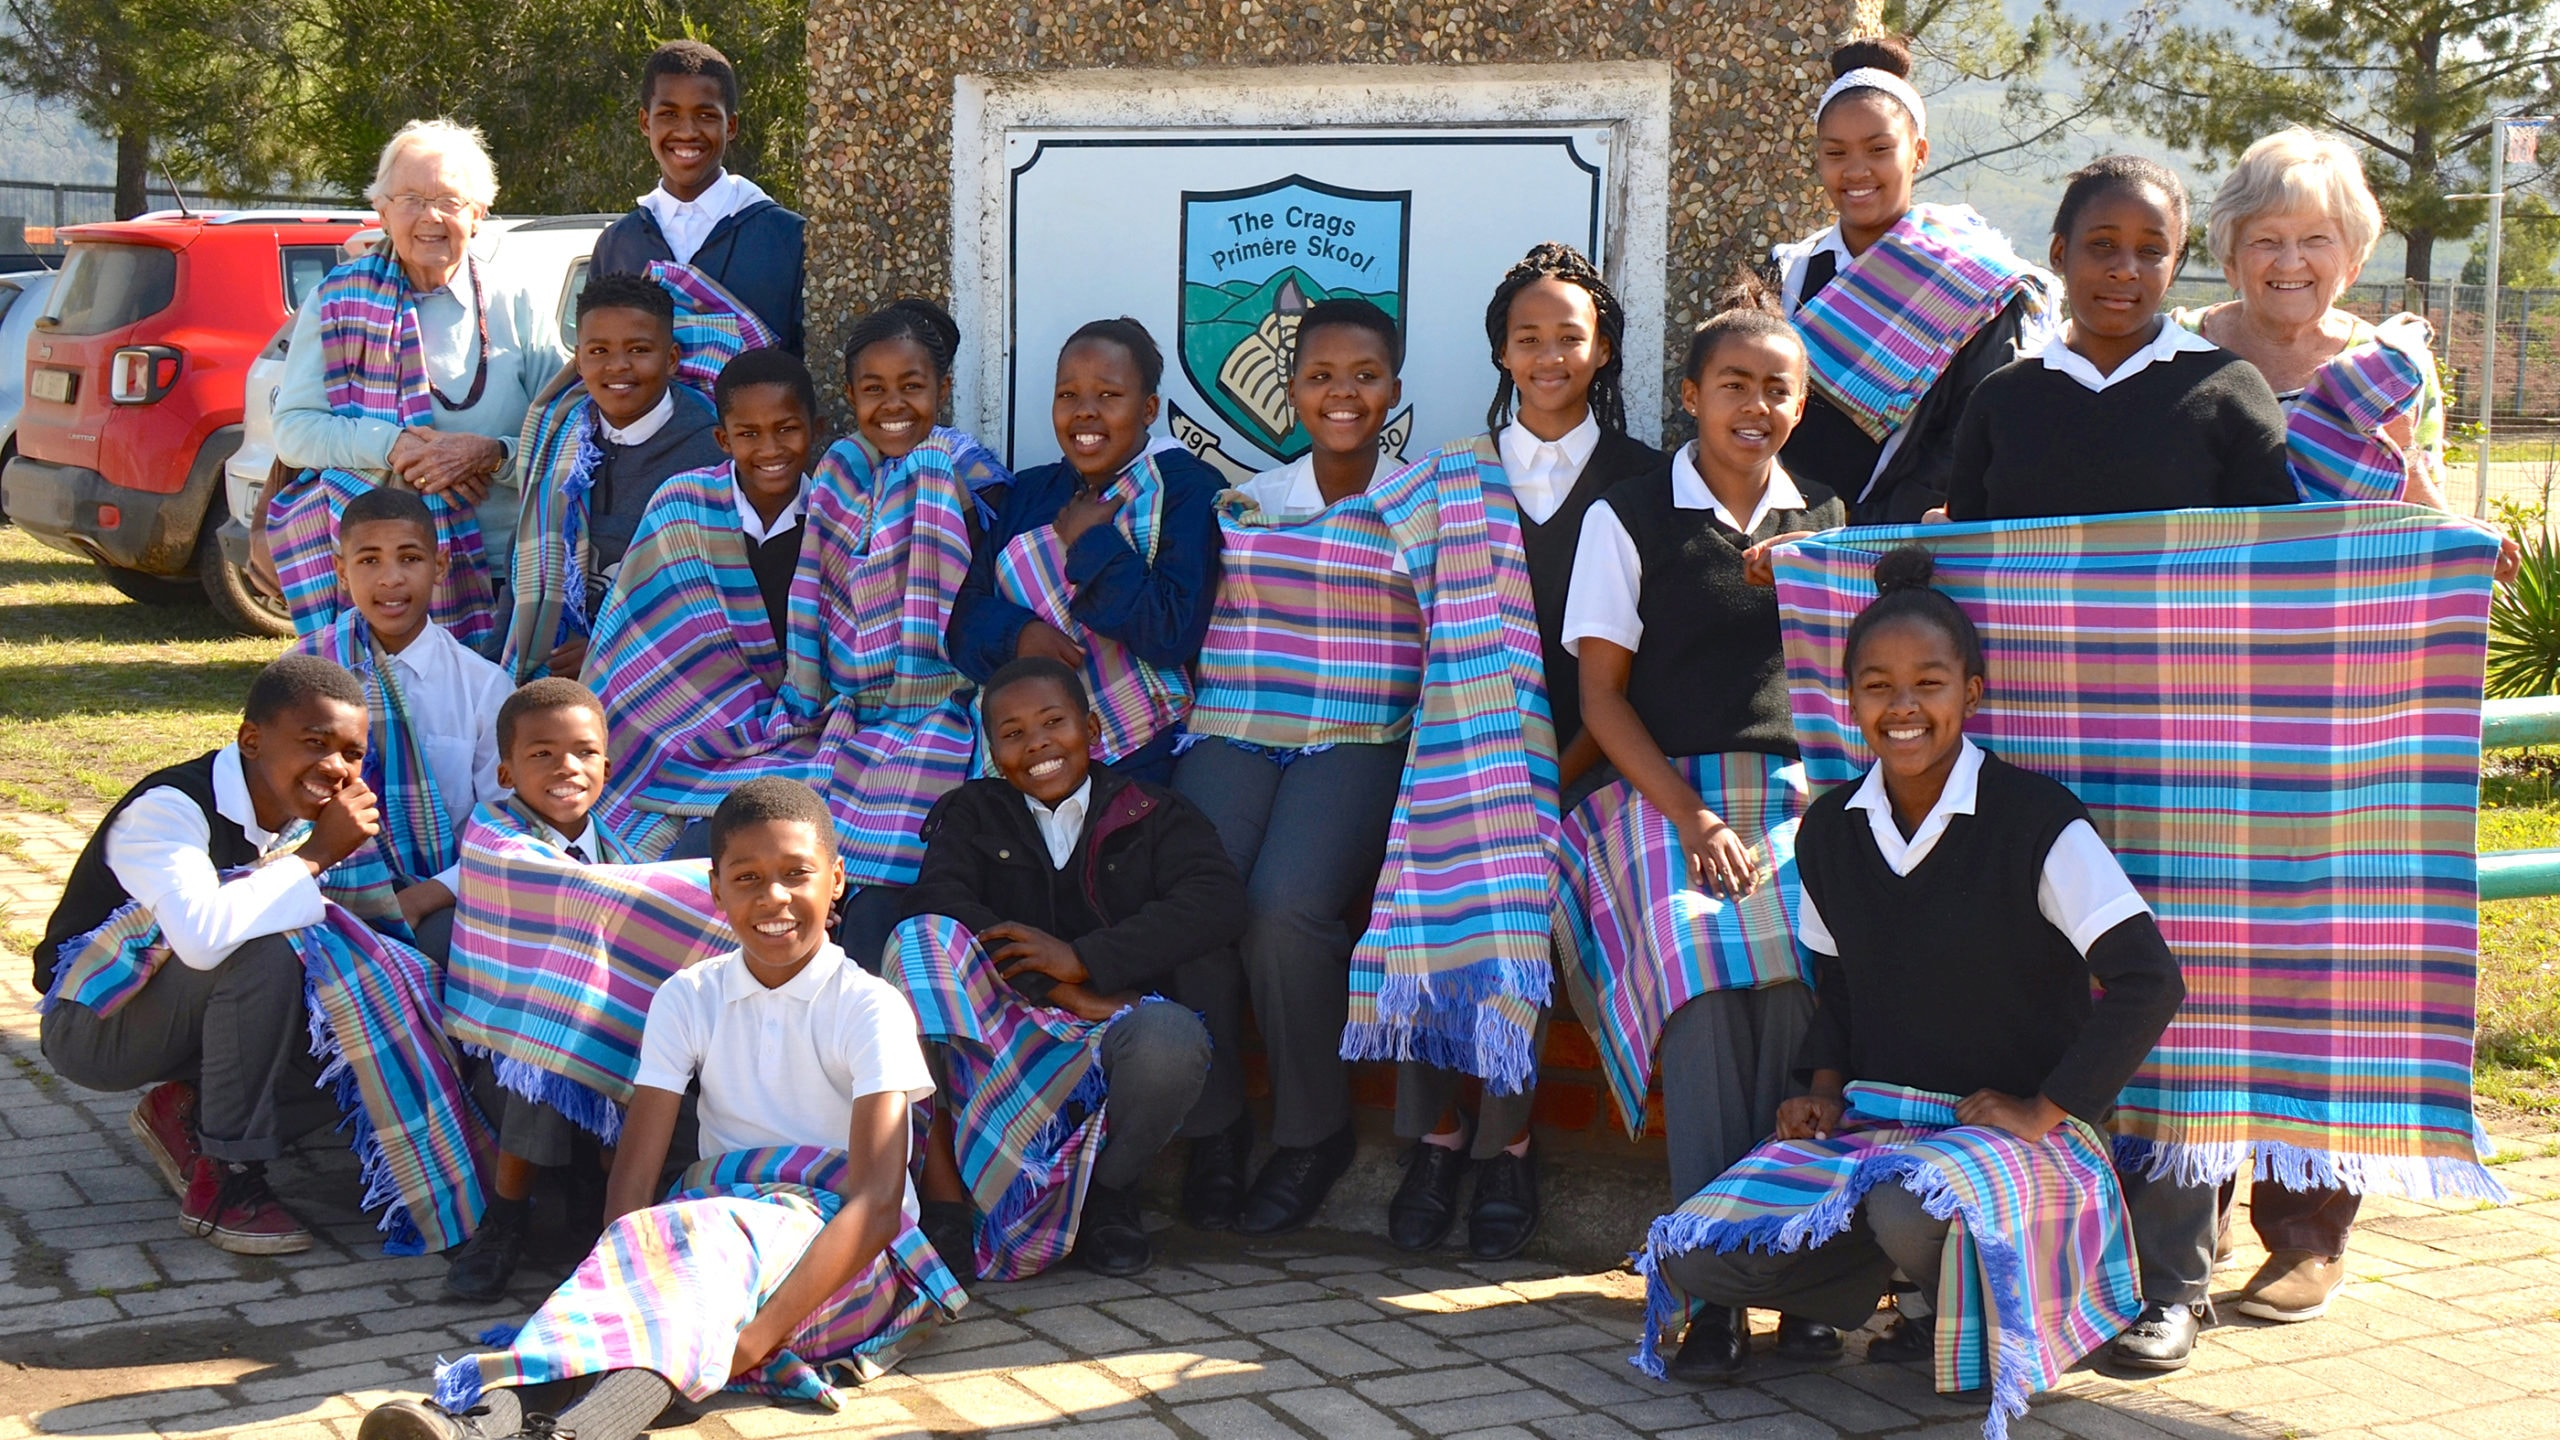 Students of the Crags Primary School in Plettenberg Bay in attendance at the Mungo Mill for a textile tour & workshop.